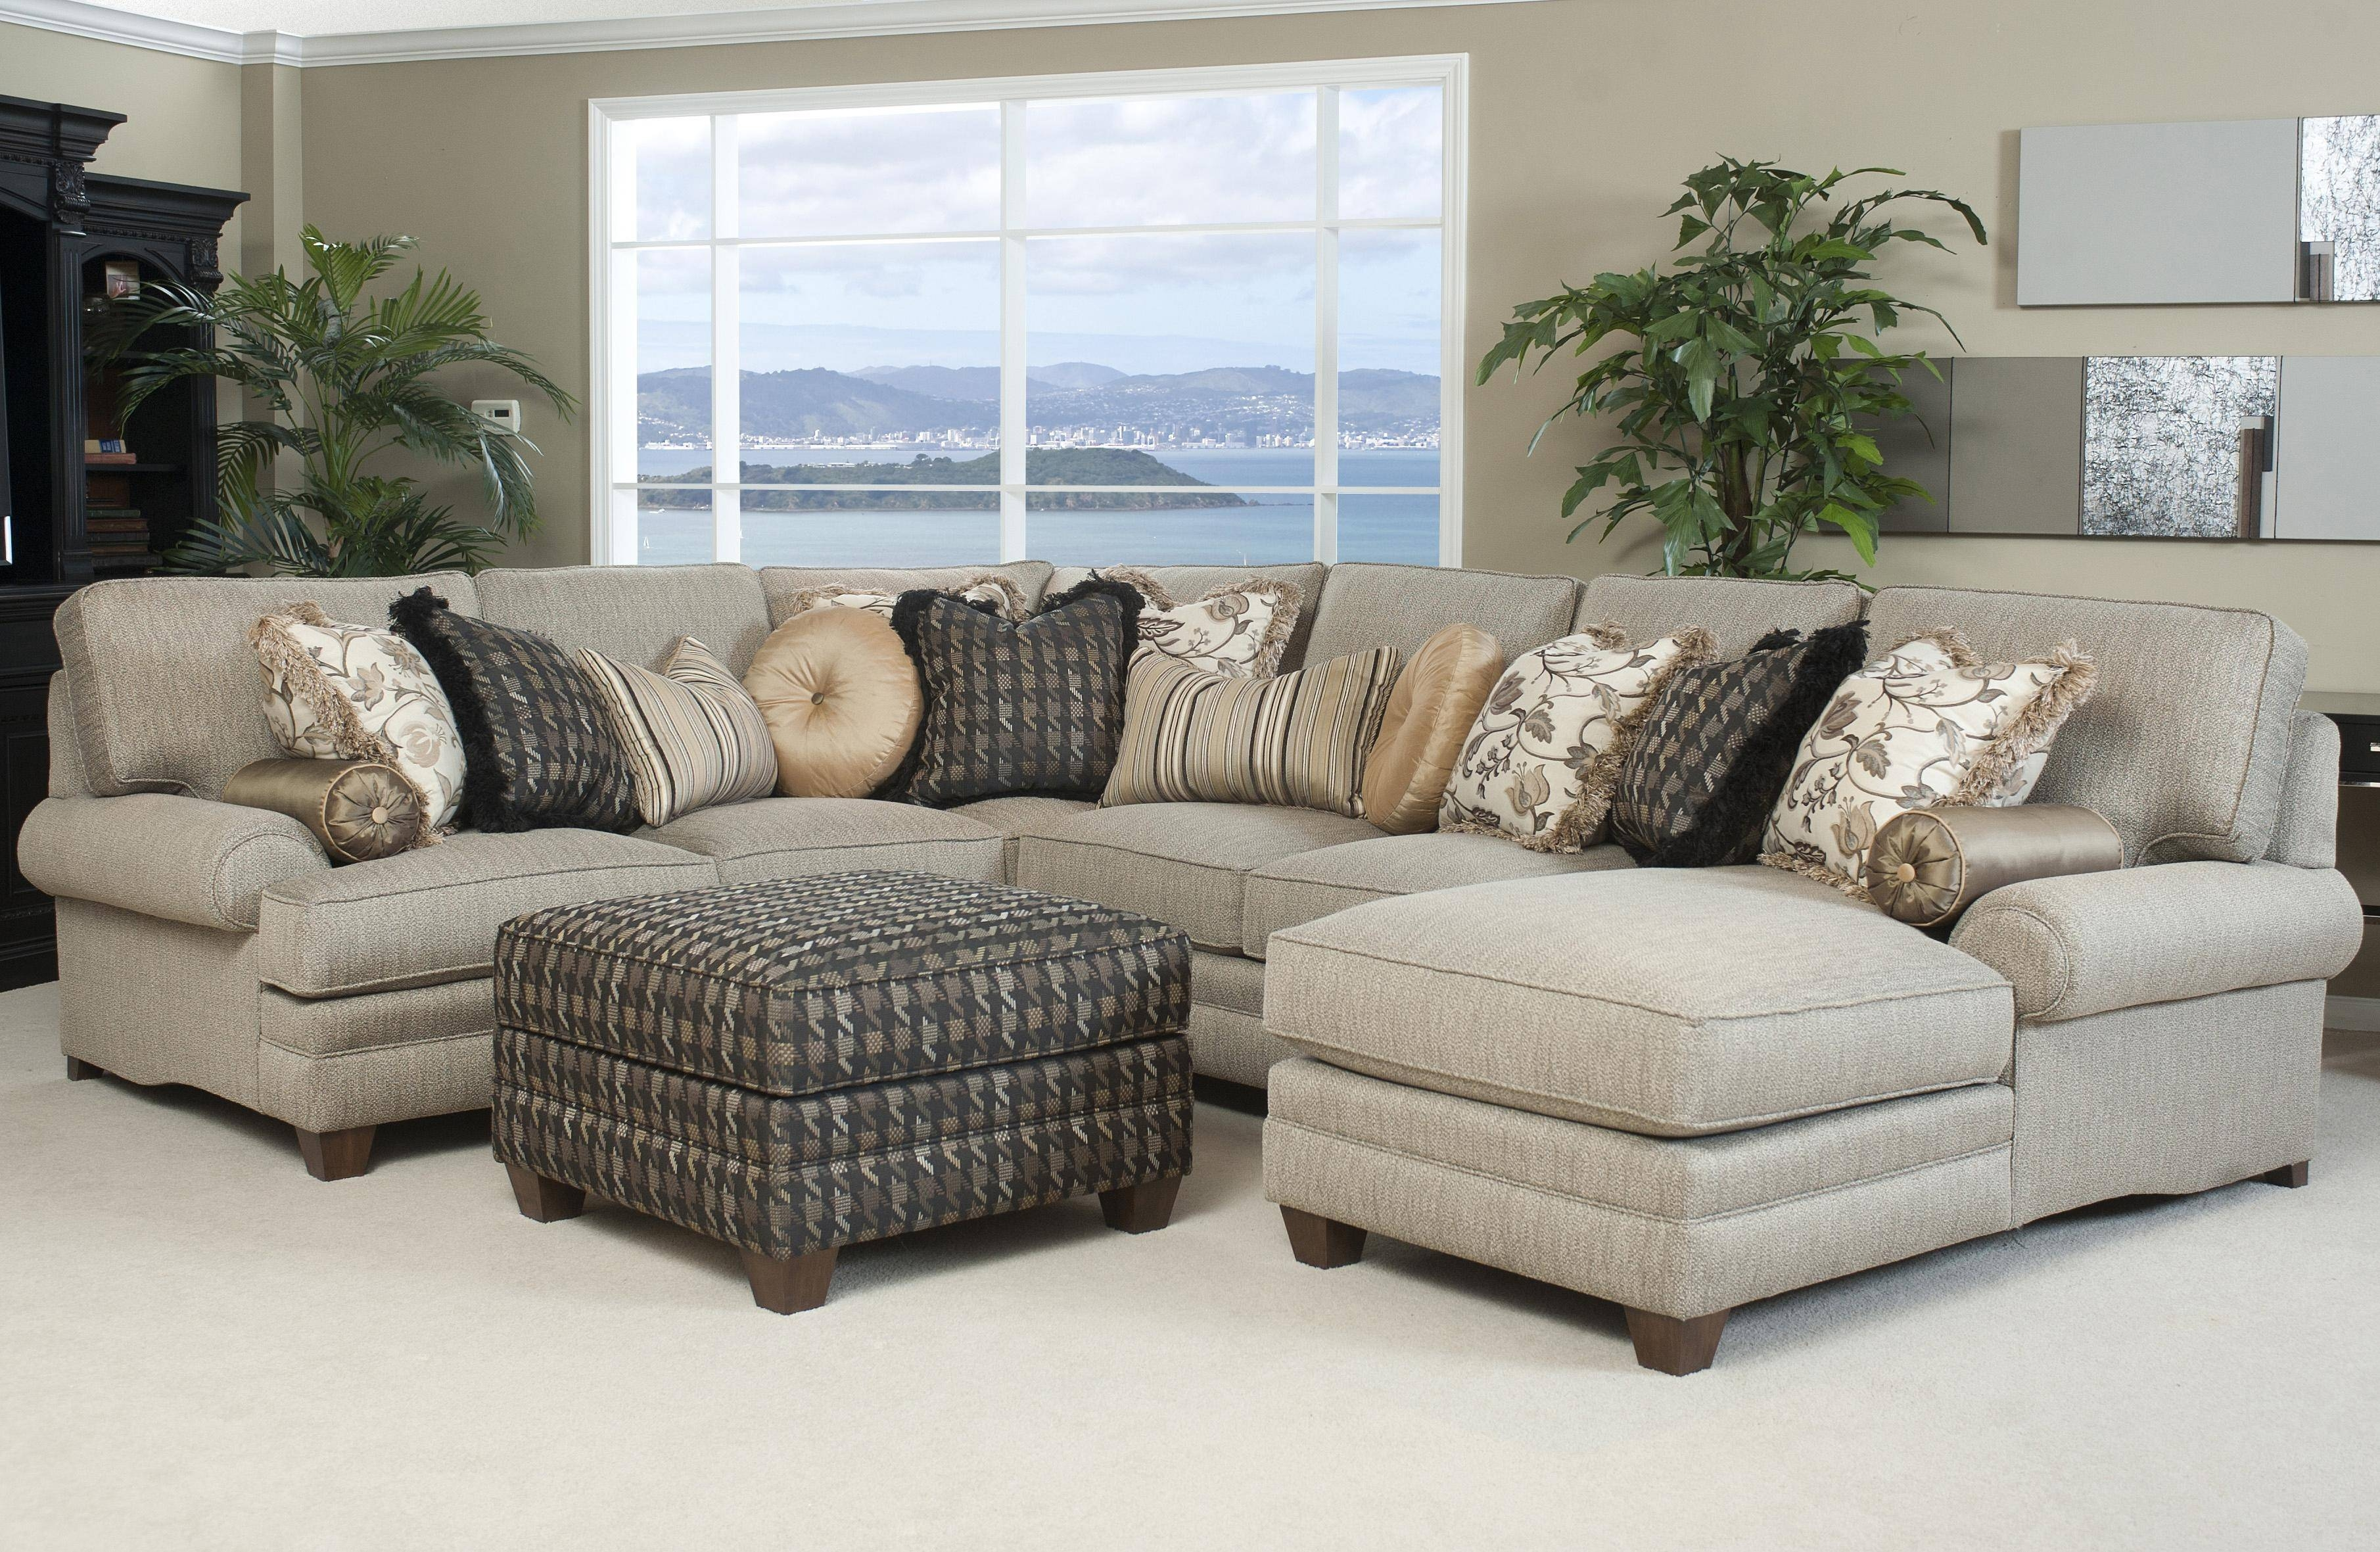 Sofas Center : Unforgettable Southwestern Style Sofas Images Ideas throughout Western Style Sectional Sofas (Image 21 of 30)